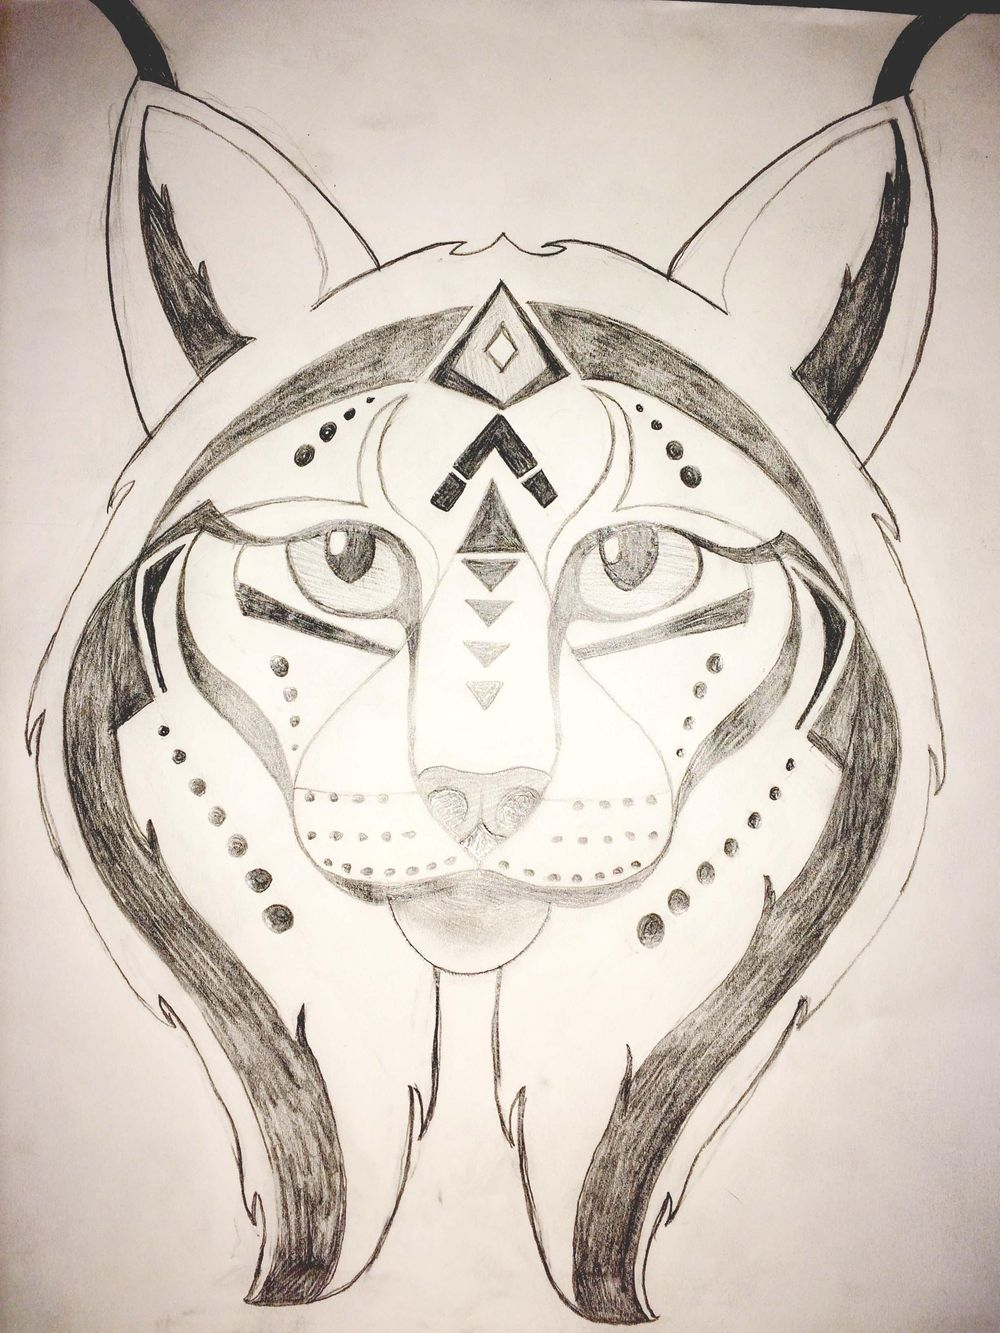 Lynx, by Linx - image 4 - student project